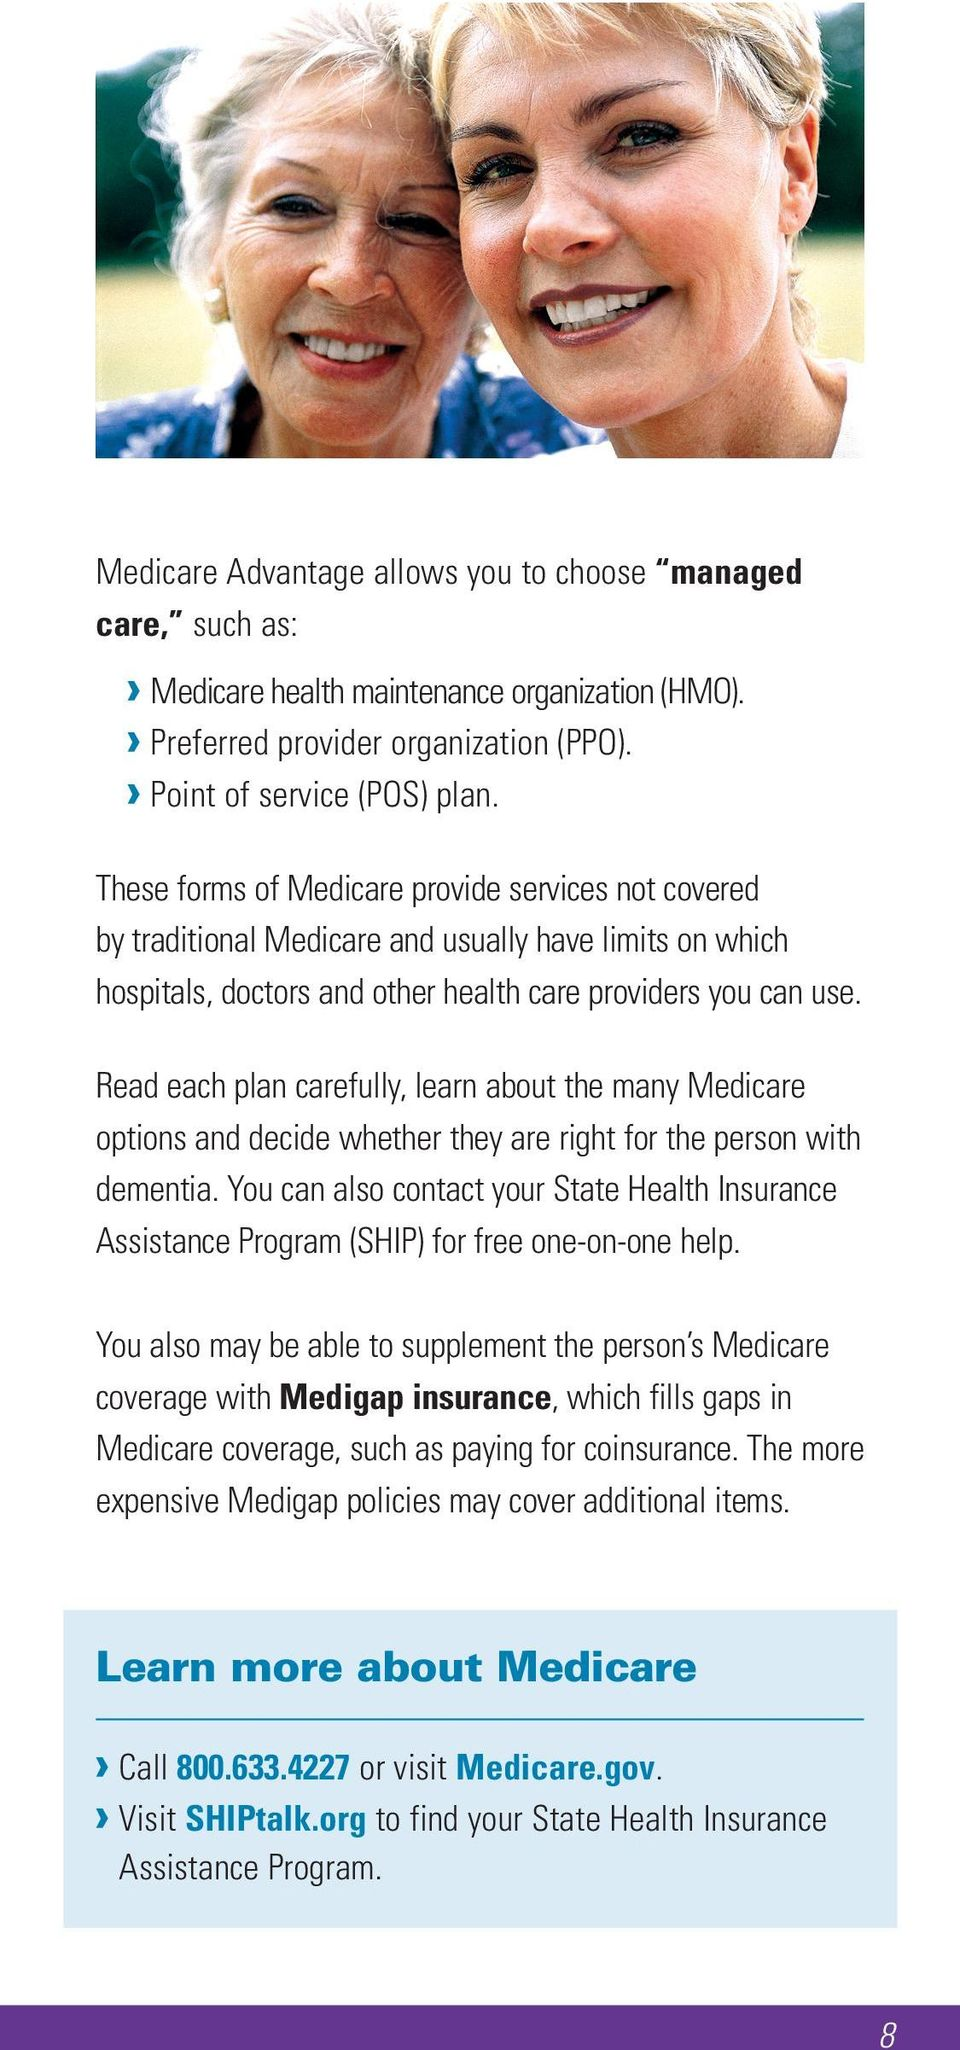 Read each plan carefully, learn about the many Medicare options and decide whether they are right for the person with dementia.